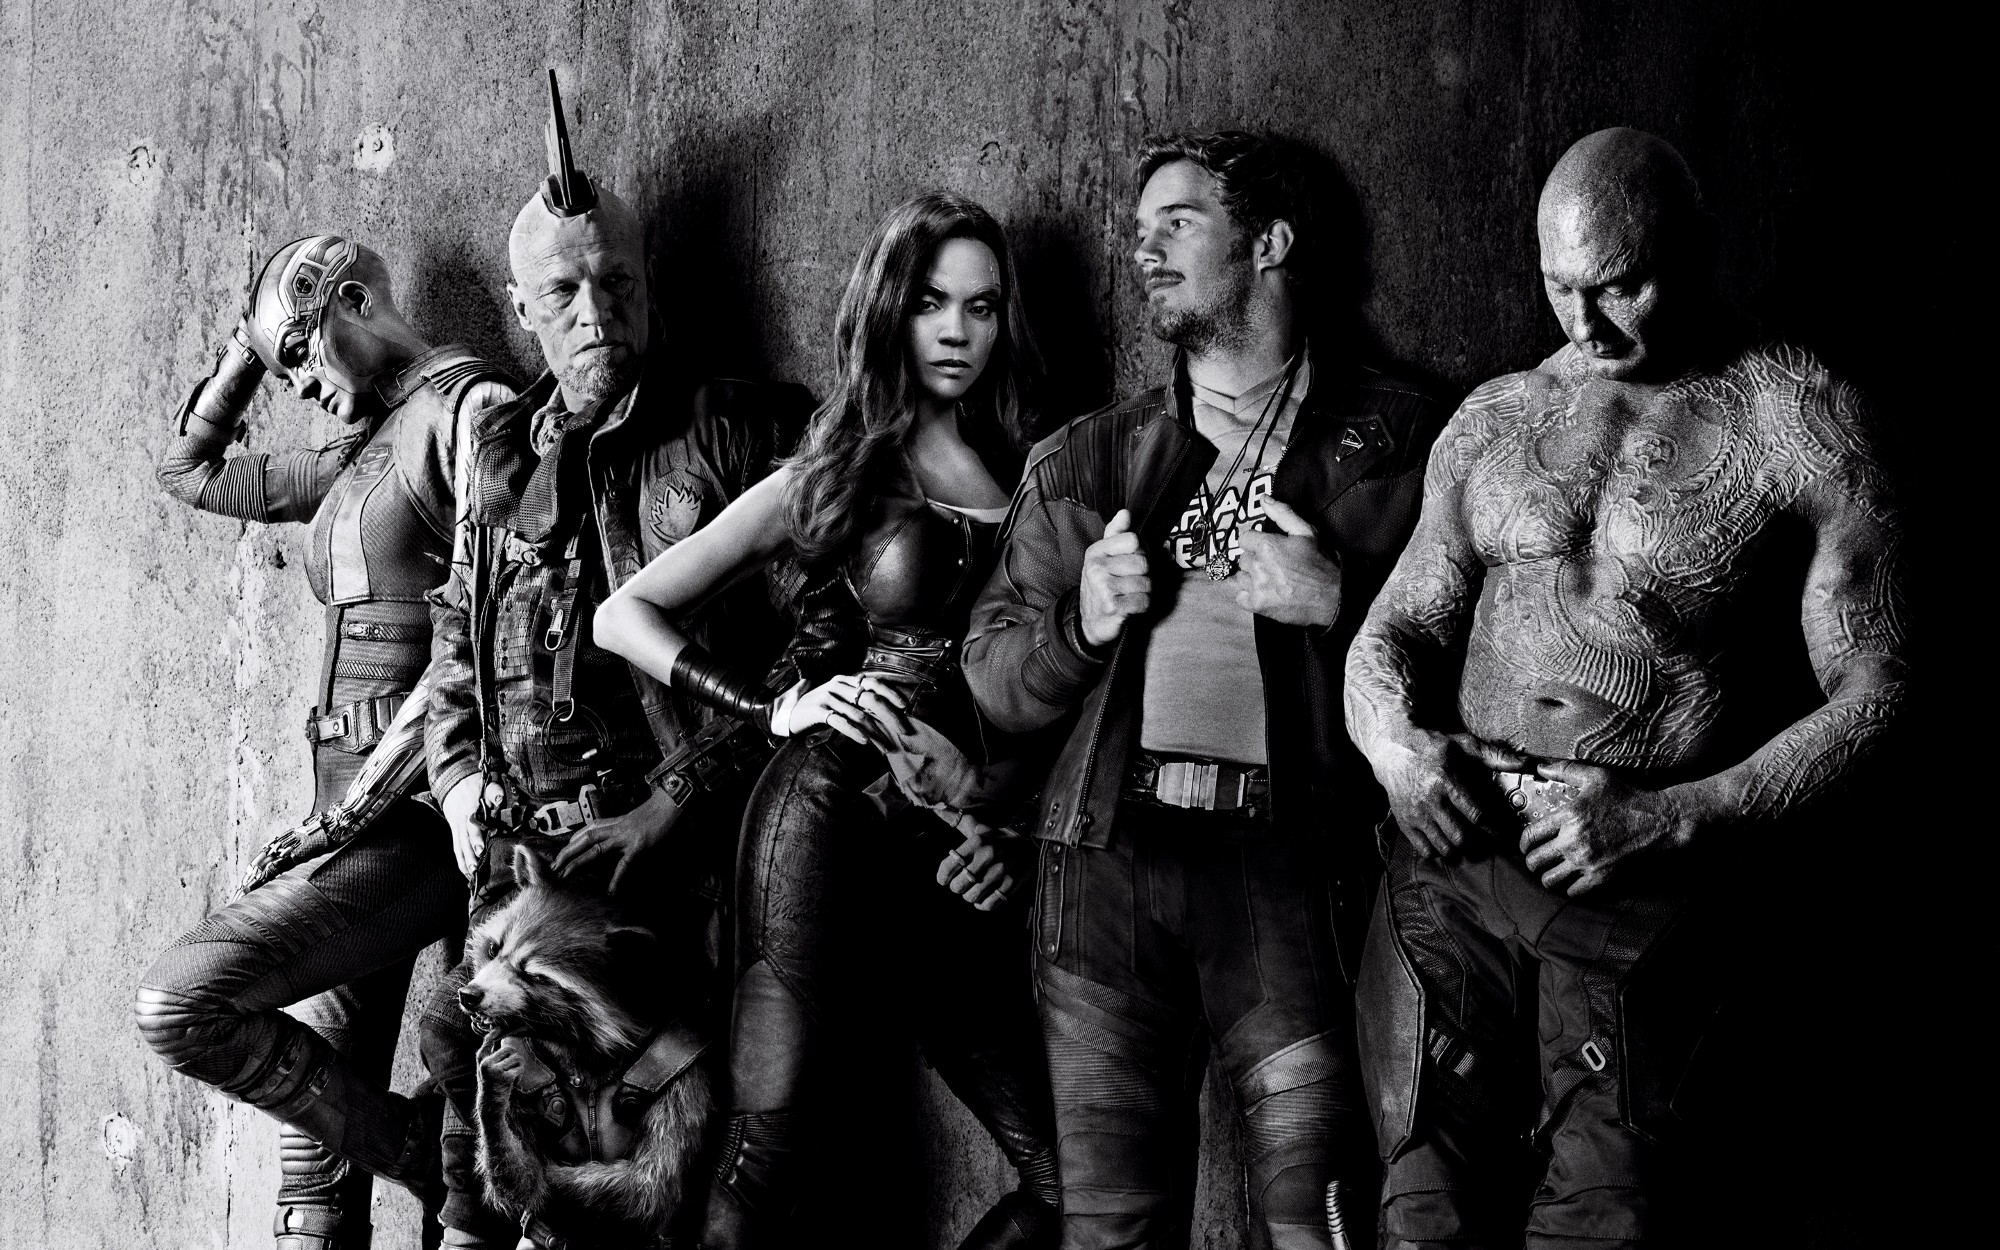 guardians of the galaxy 2 has a nostalgia problem the off world